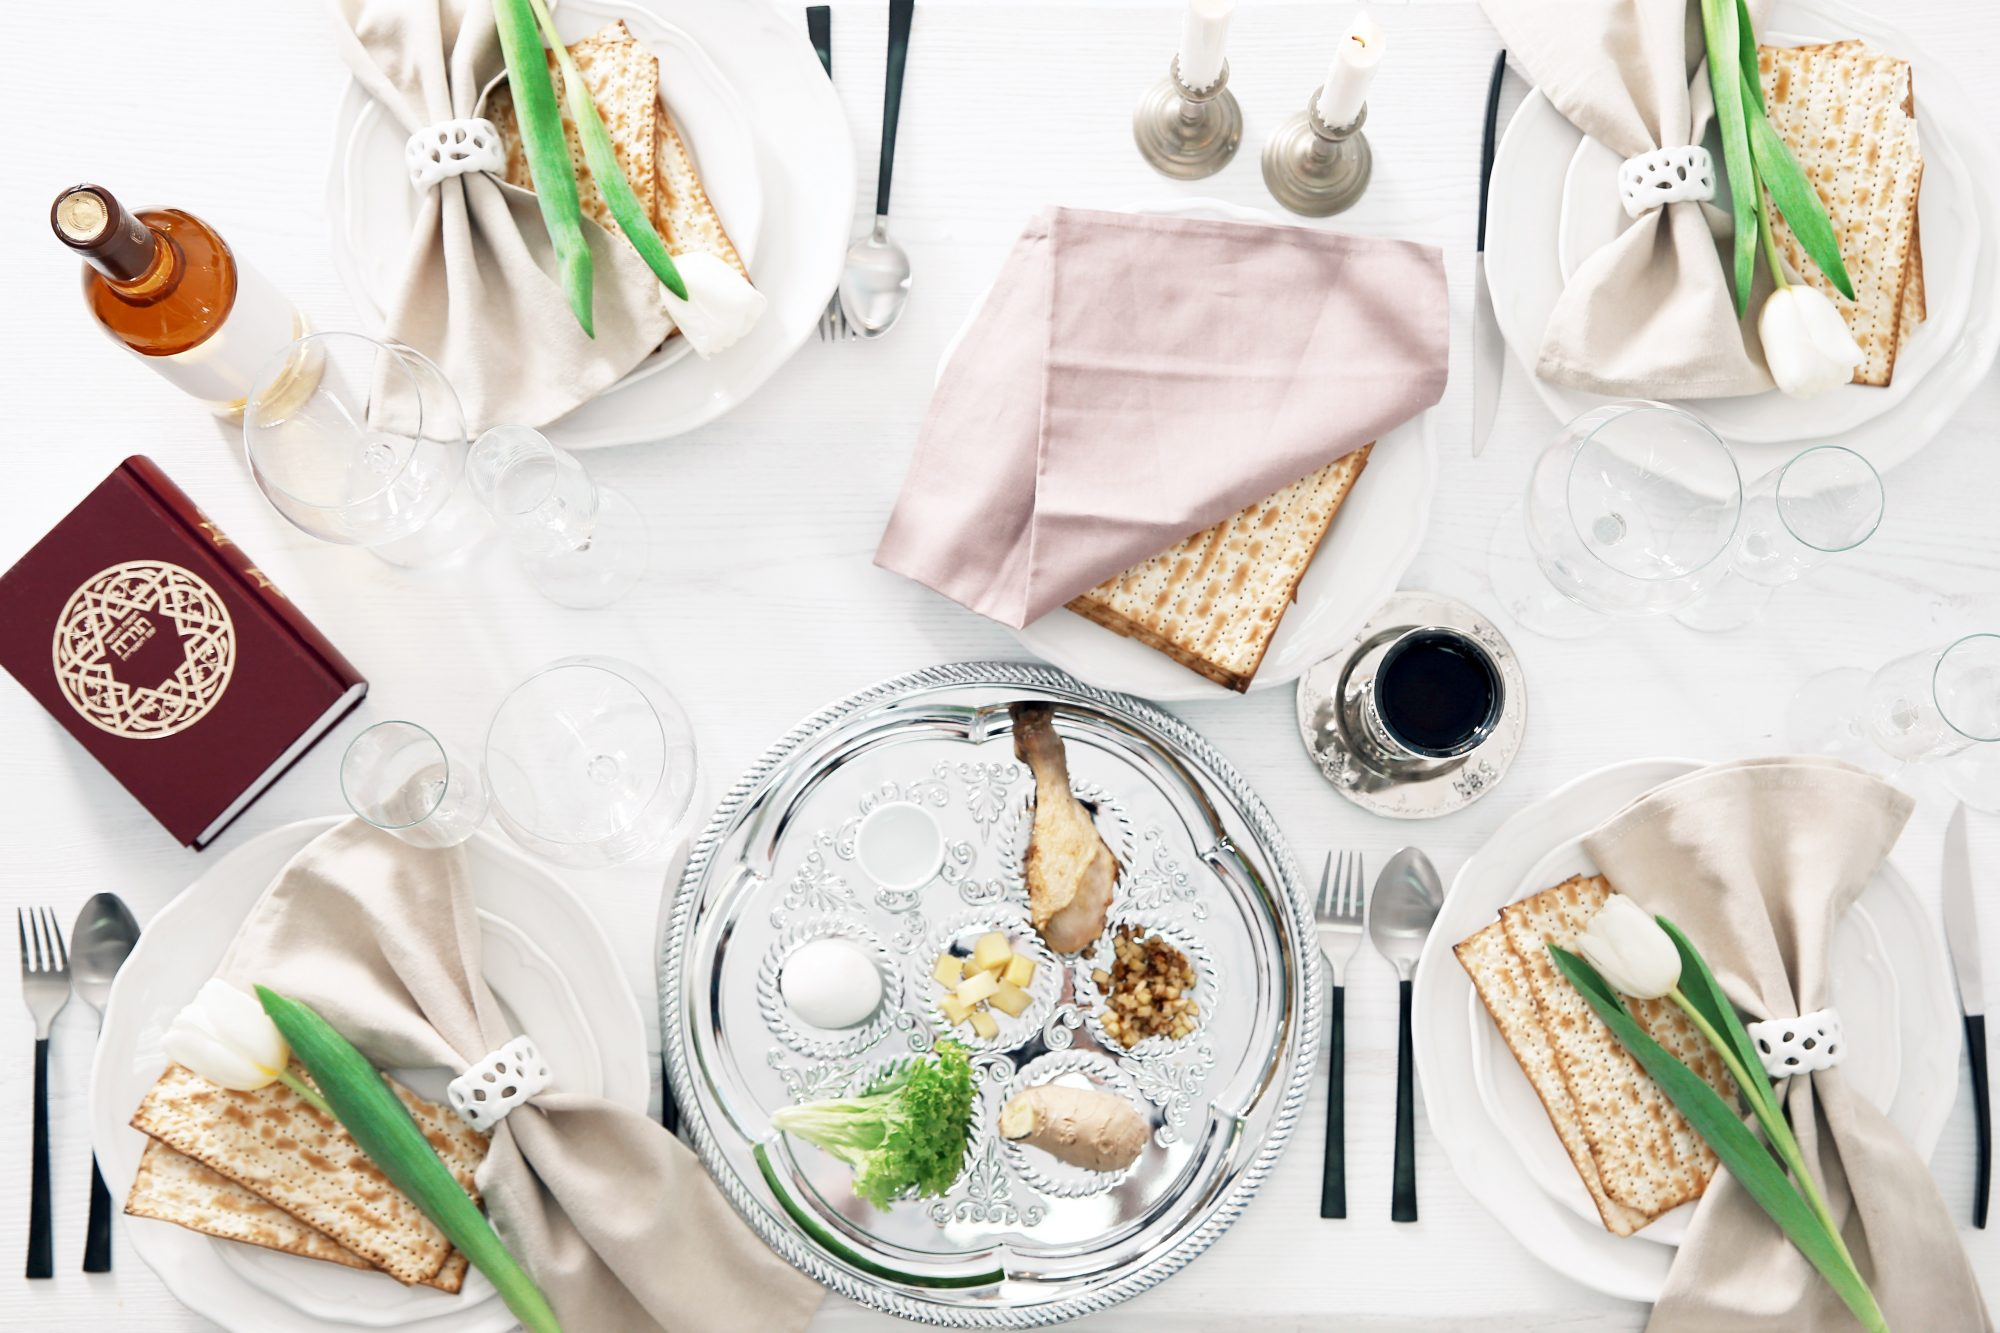 passover seder table setting from overhead